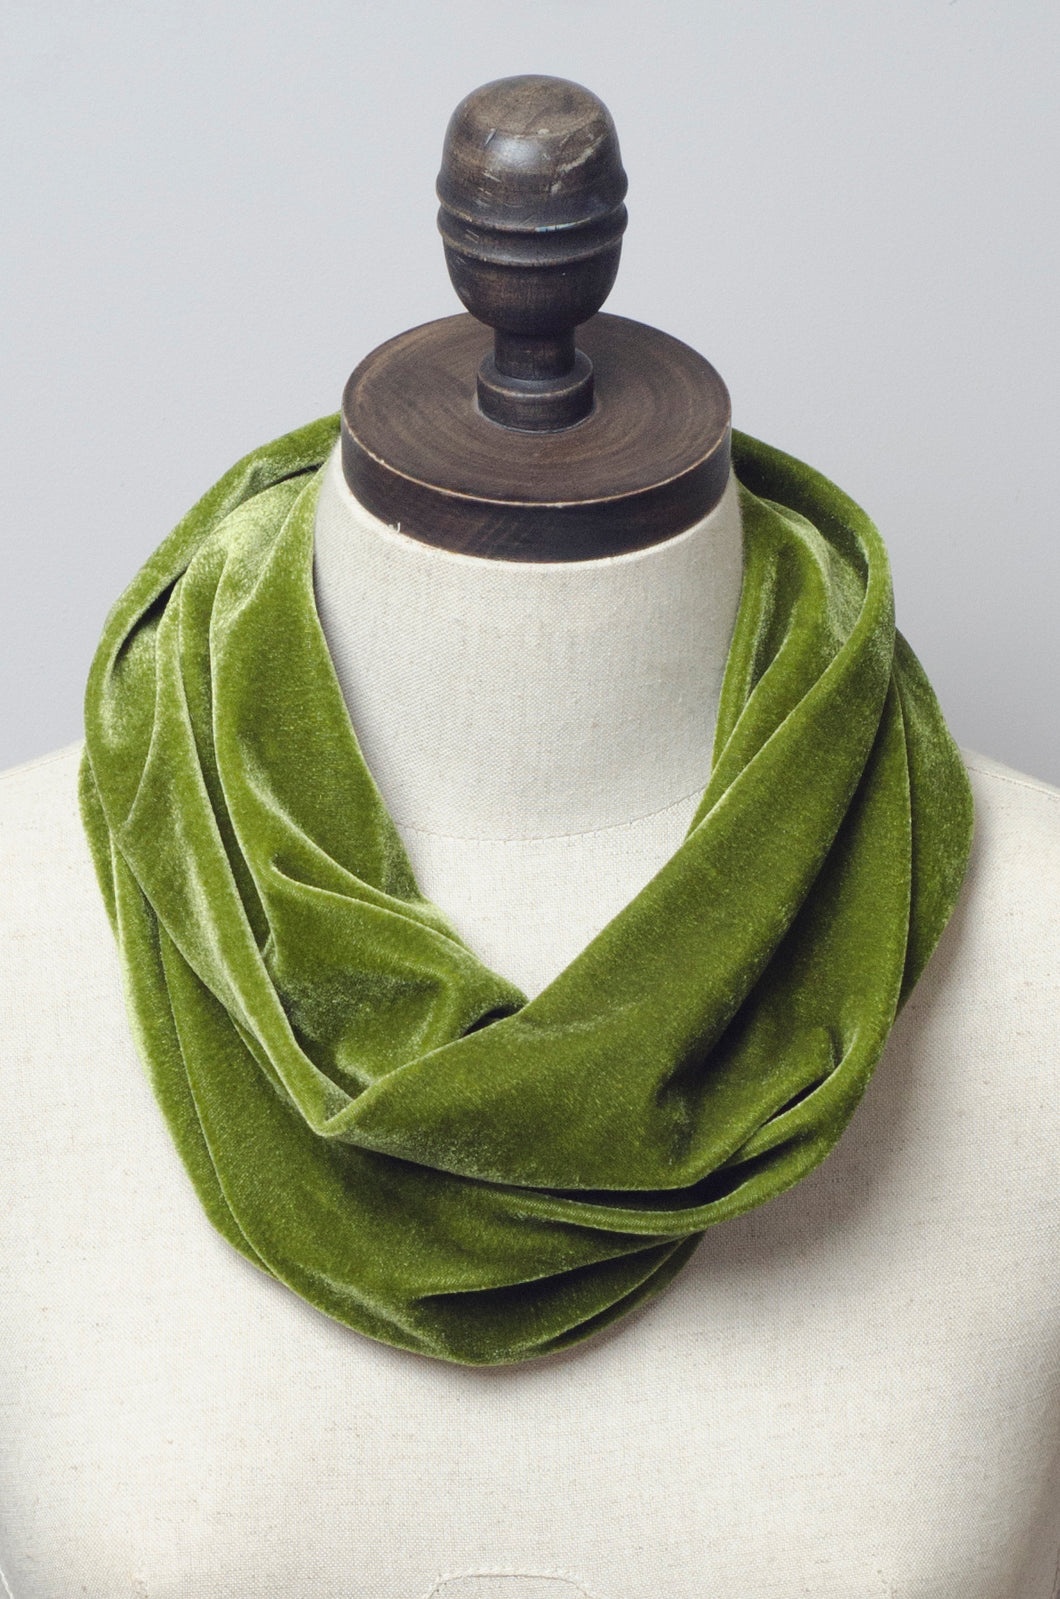 Velvet Cowl in Olive Green - Accessories - Megan Crook